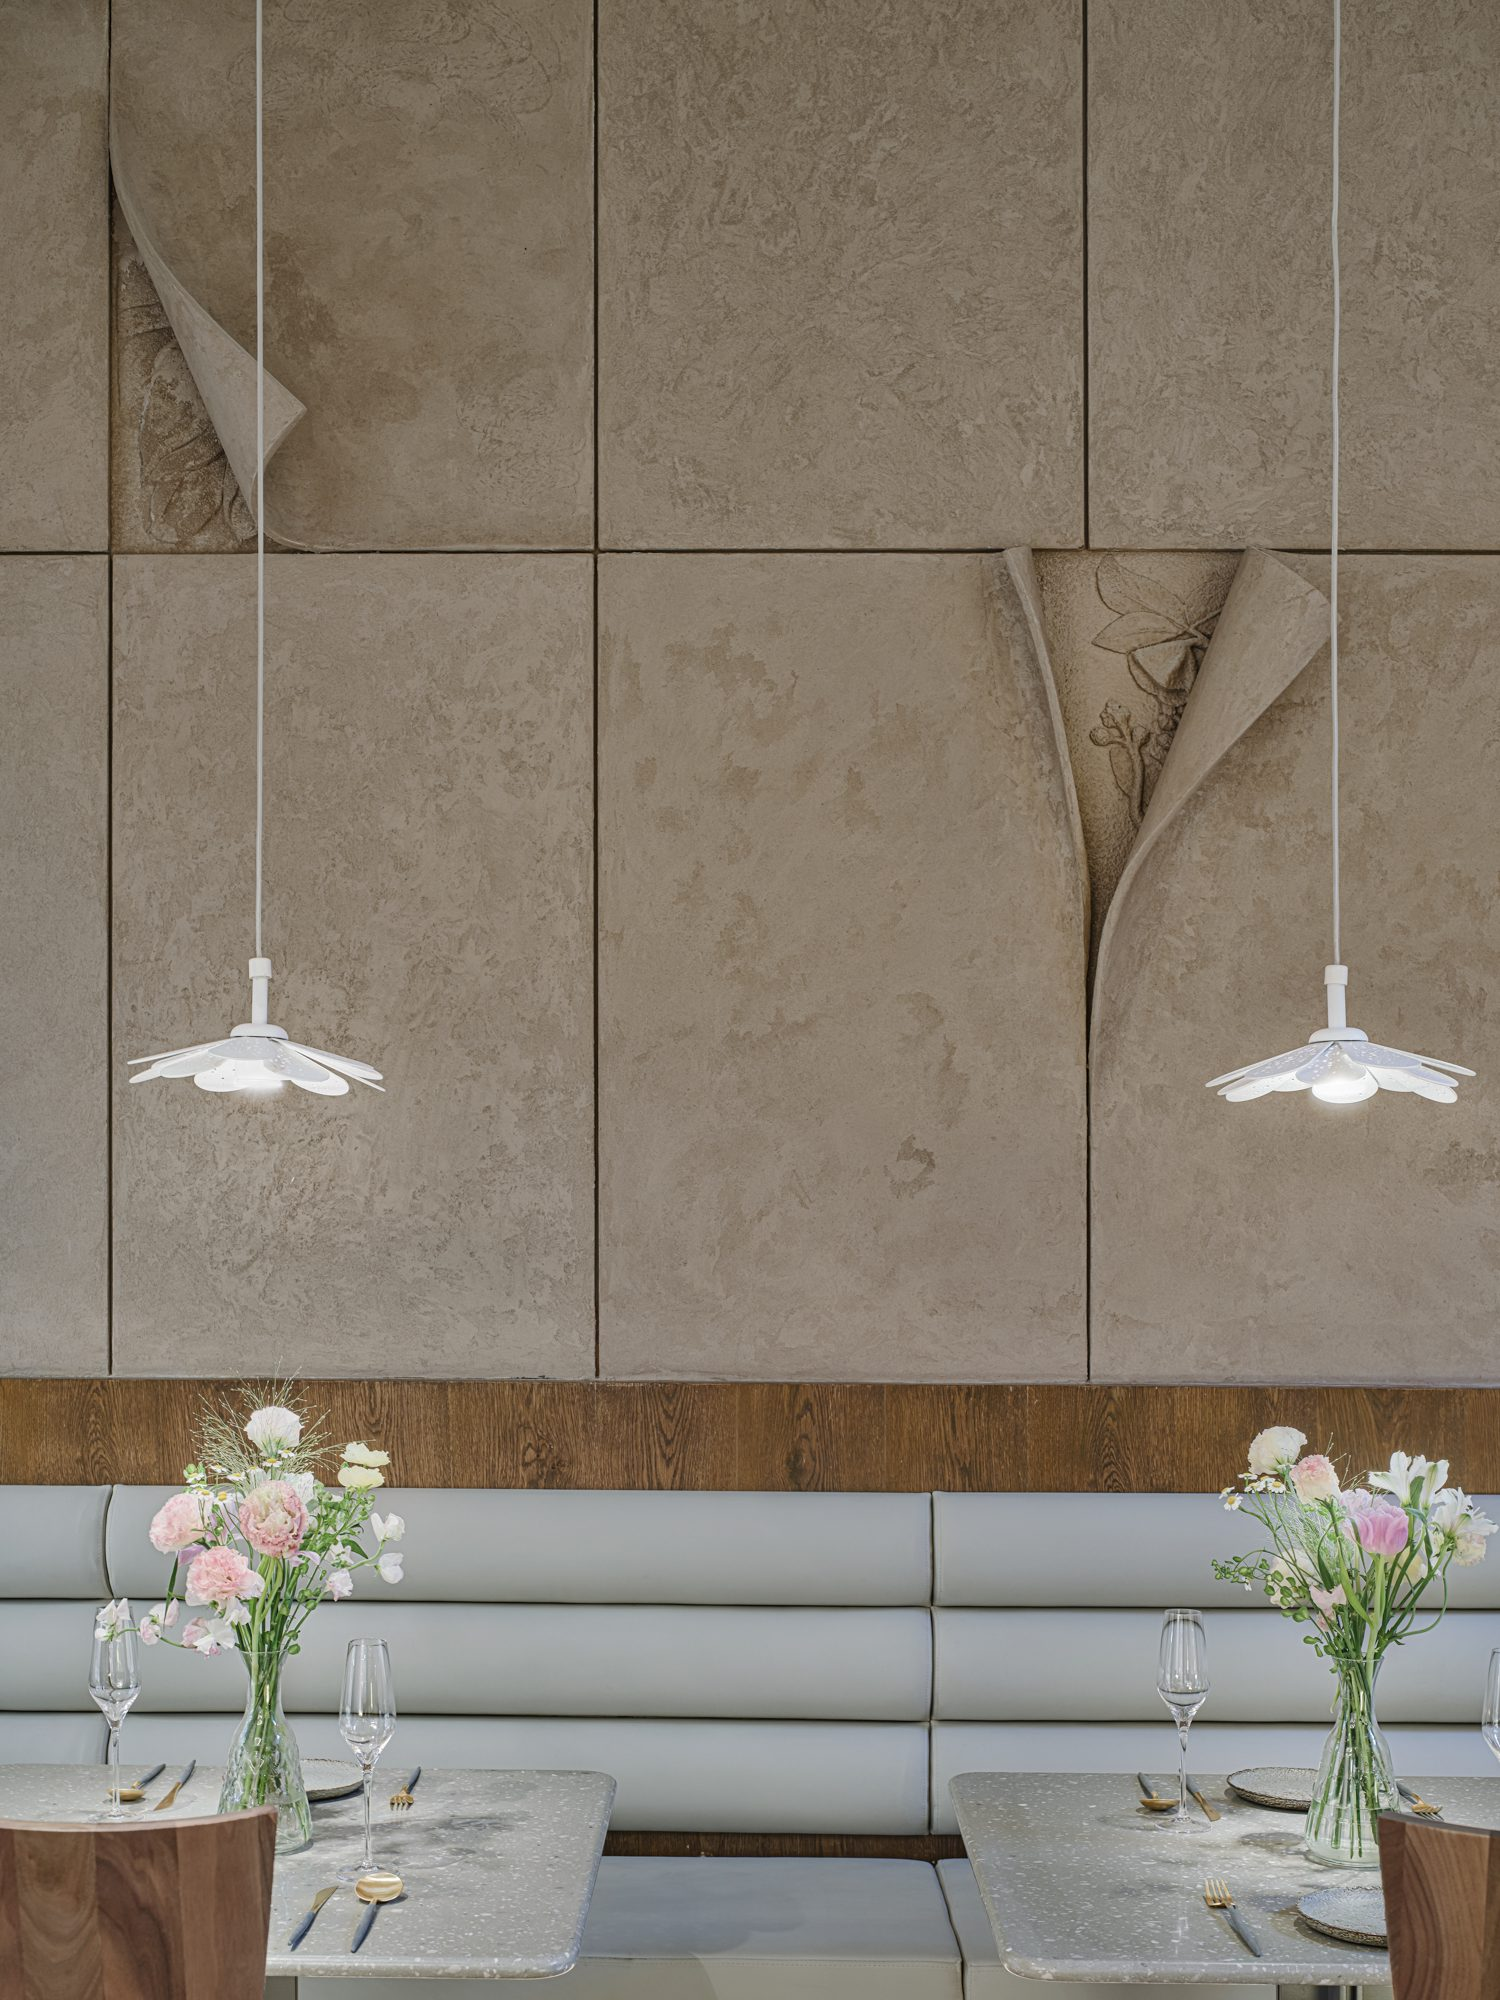 Blossoming white pendant fixtures illuminate tables. Photography by Jun Sun.